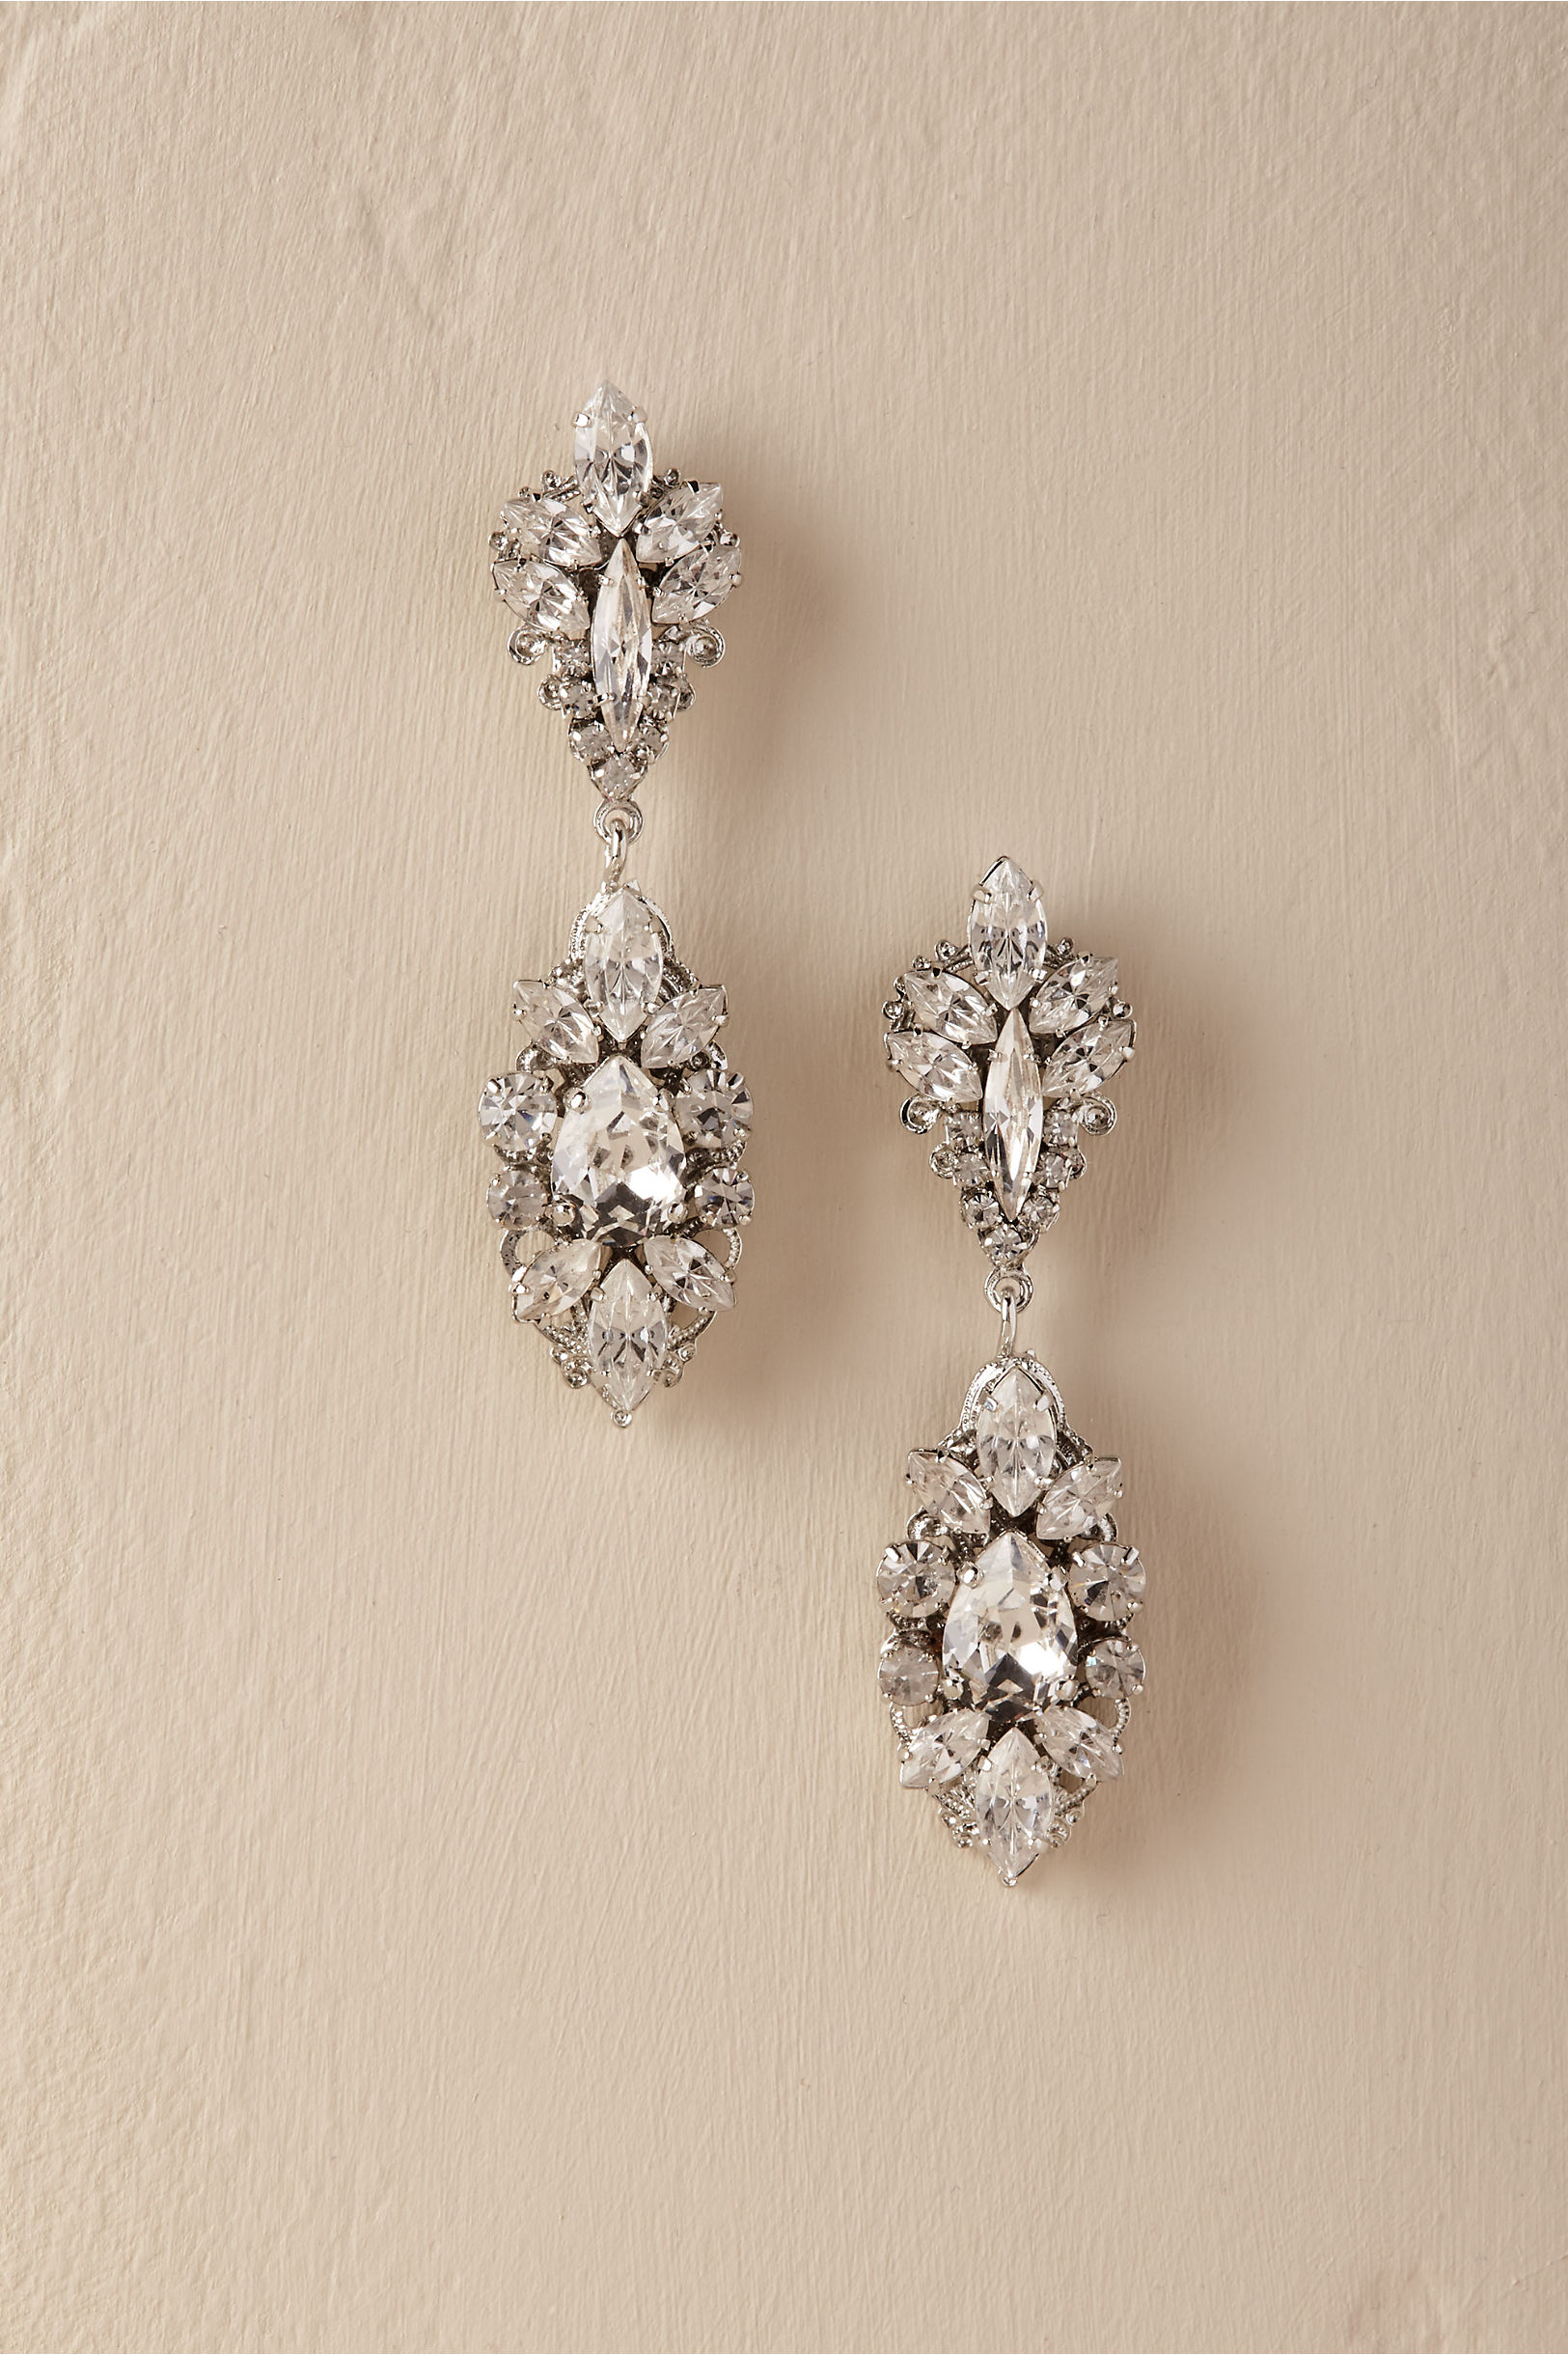 andrea kameron products tadofstyle image earrings jewellery chandelier